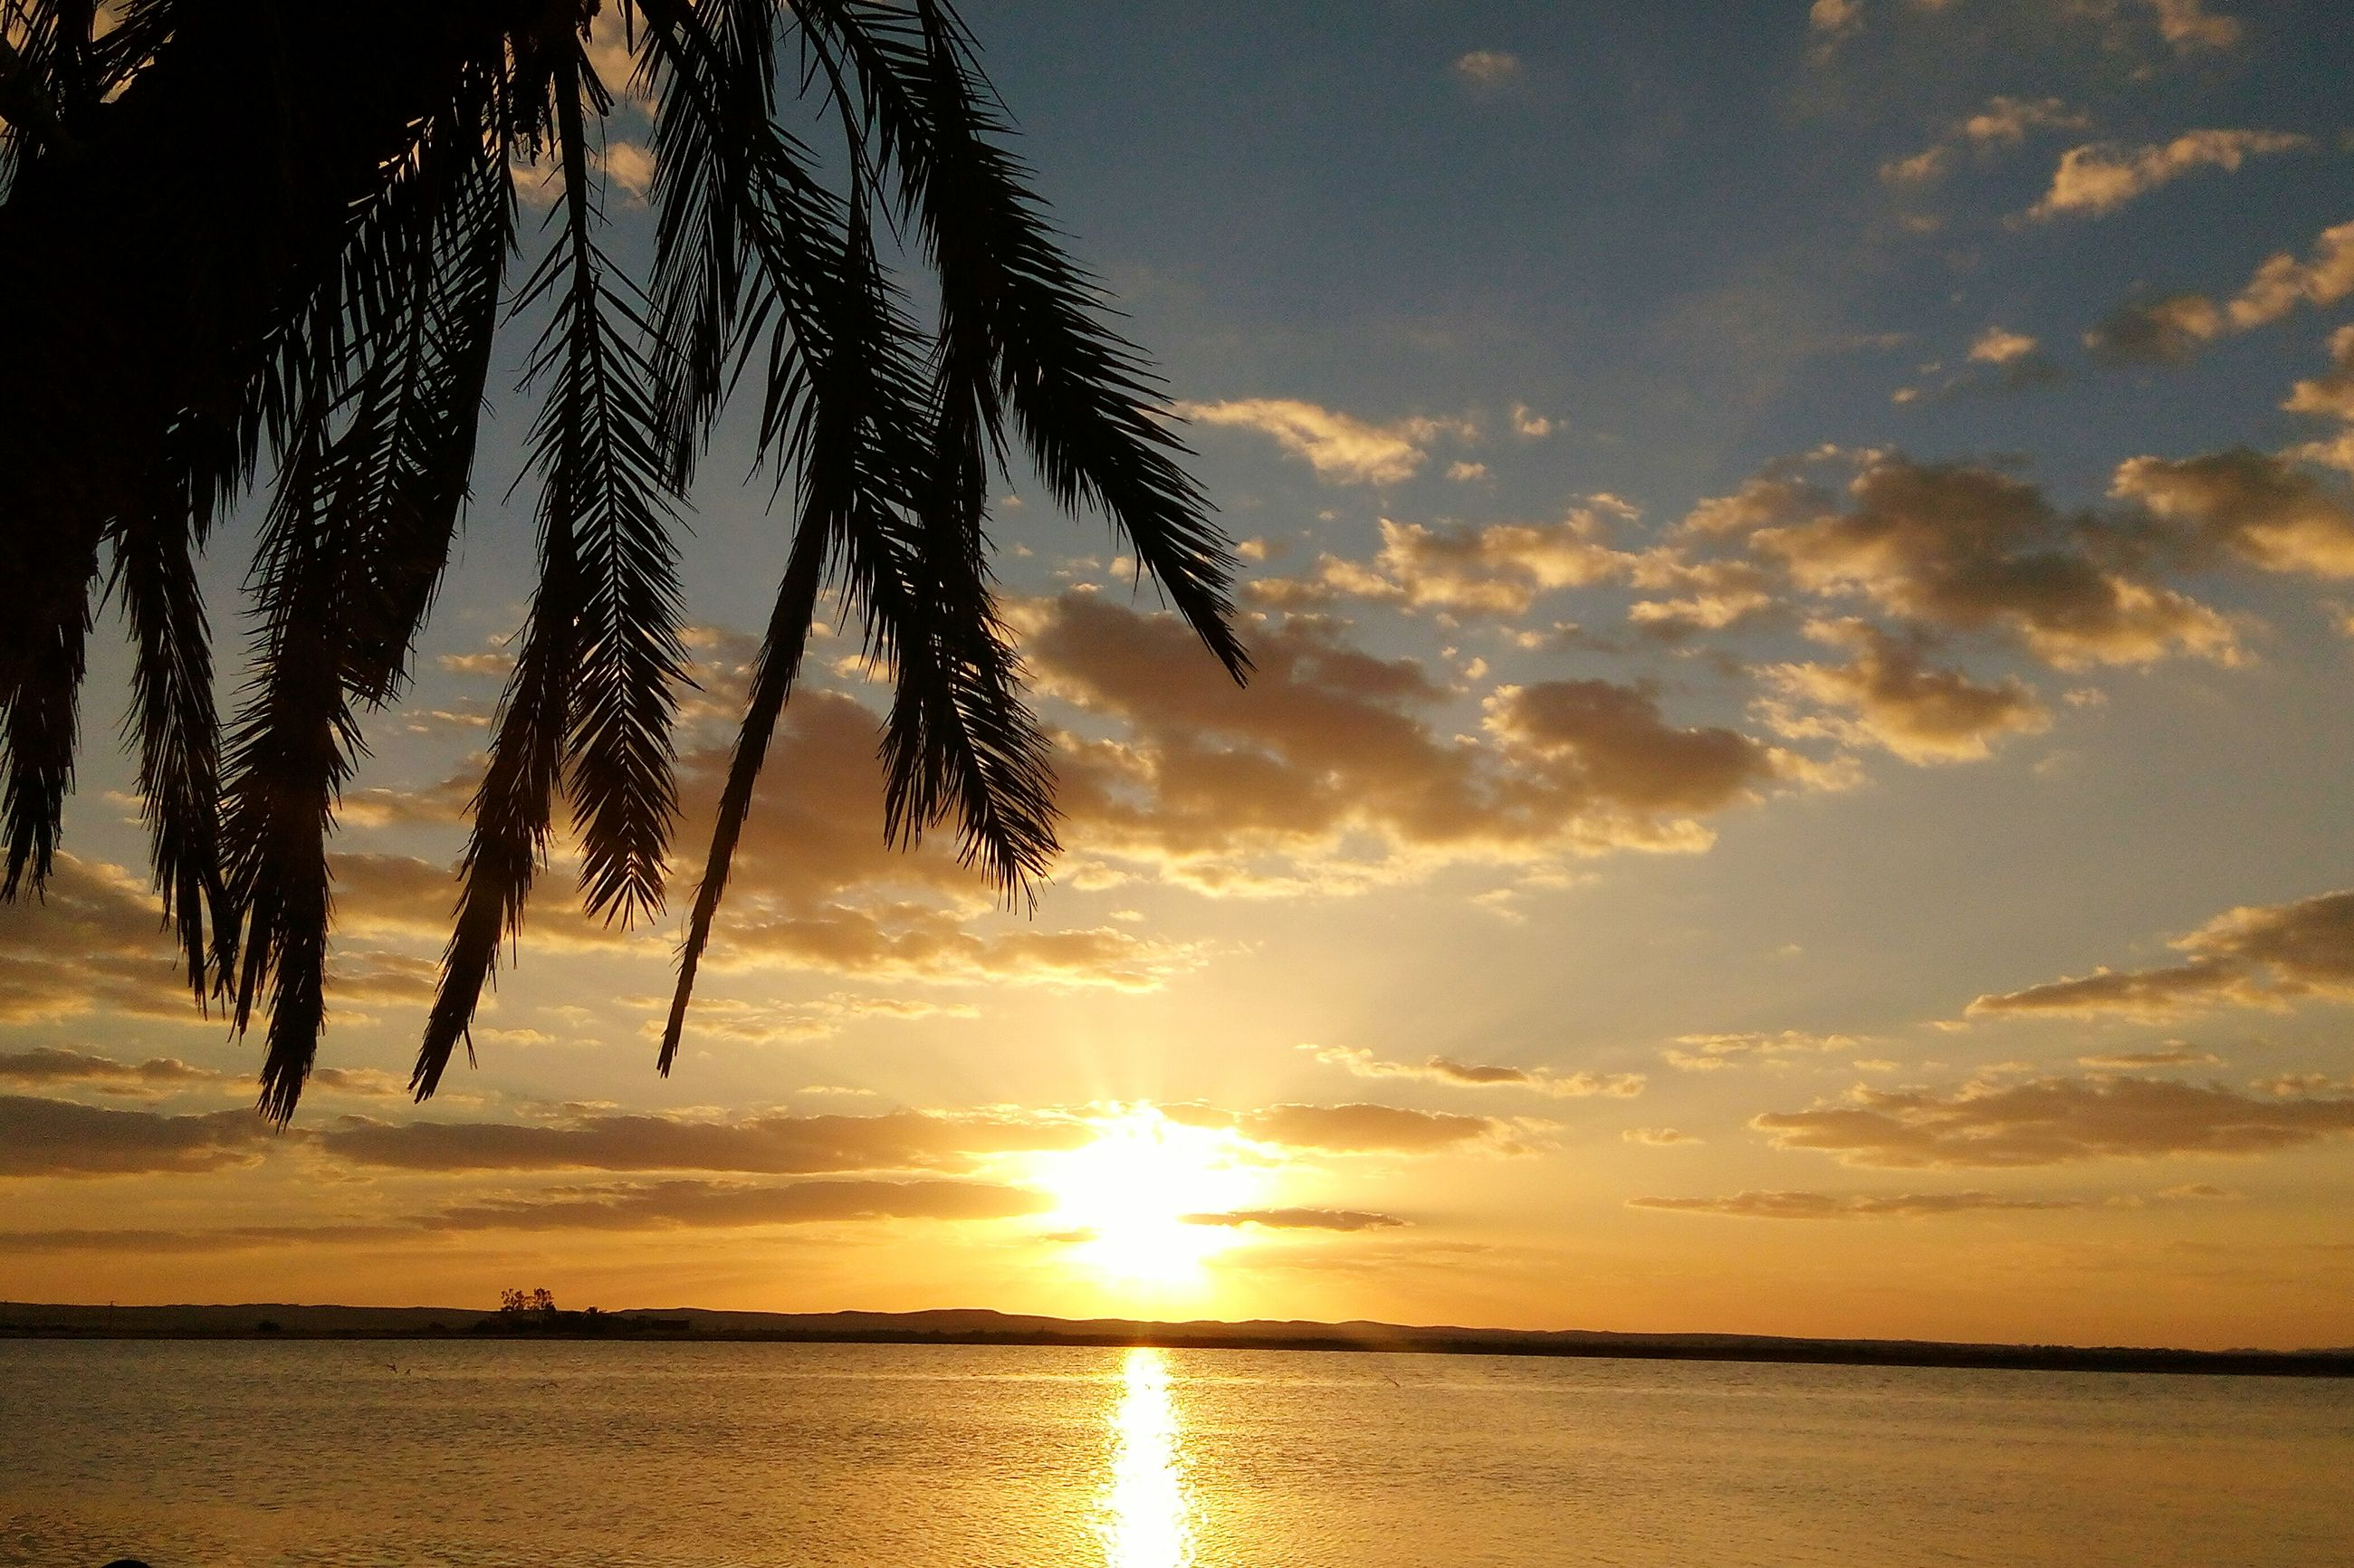 sunset, sunlight, nature, beauty in nature, sun, sky, silhouette, tranquility, sea, no people, sunbeam, water, outdoors, scenics, beach, day